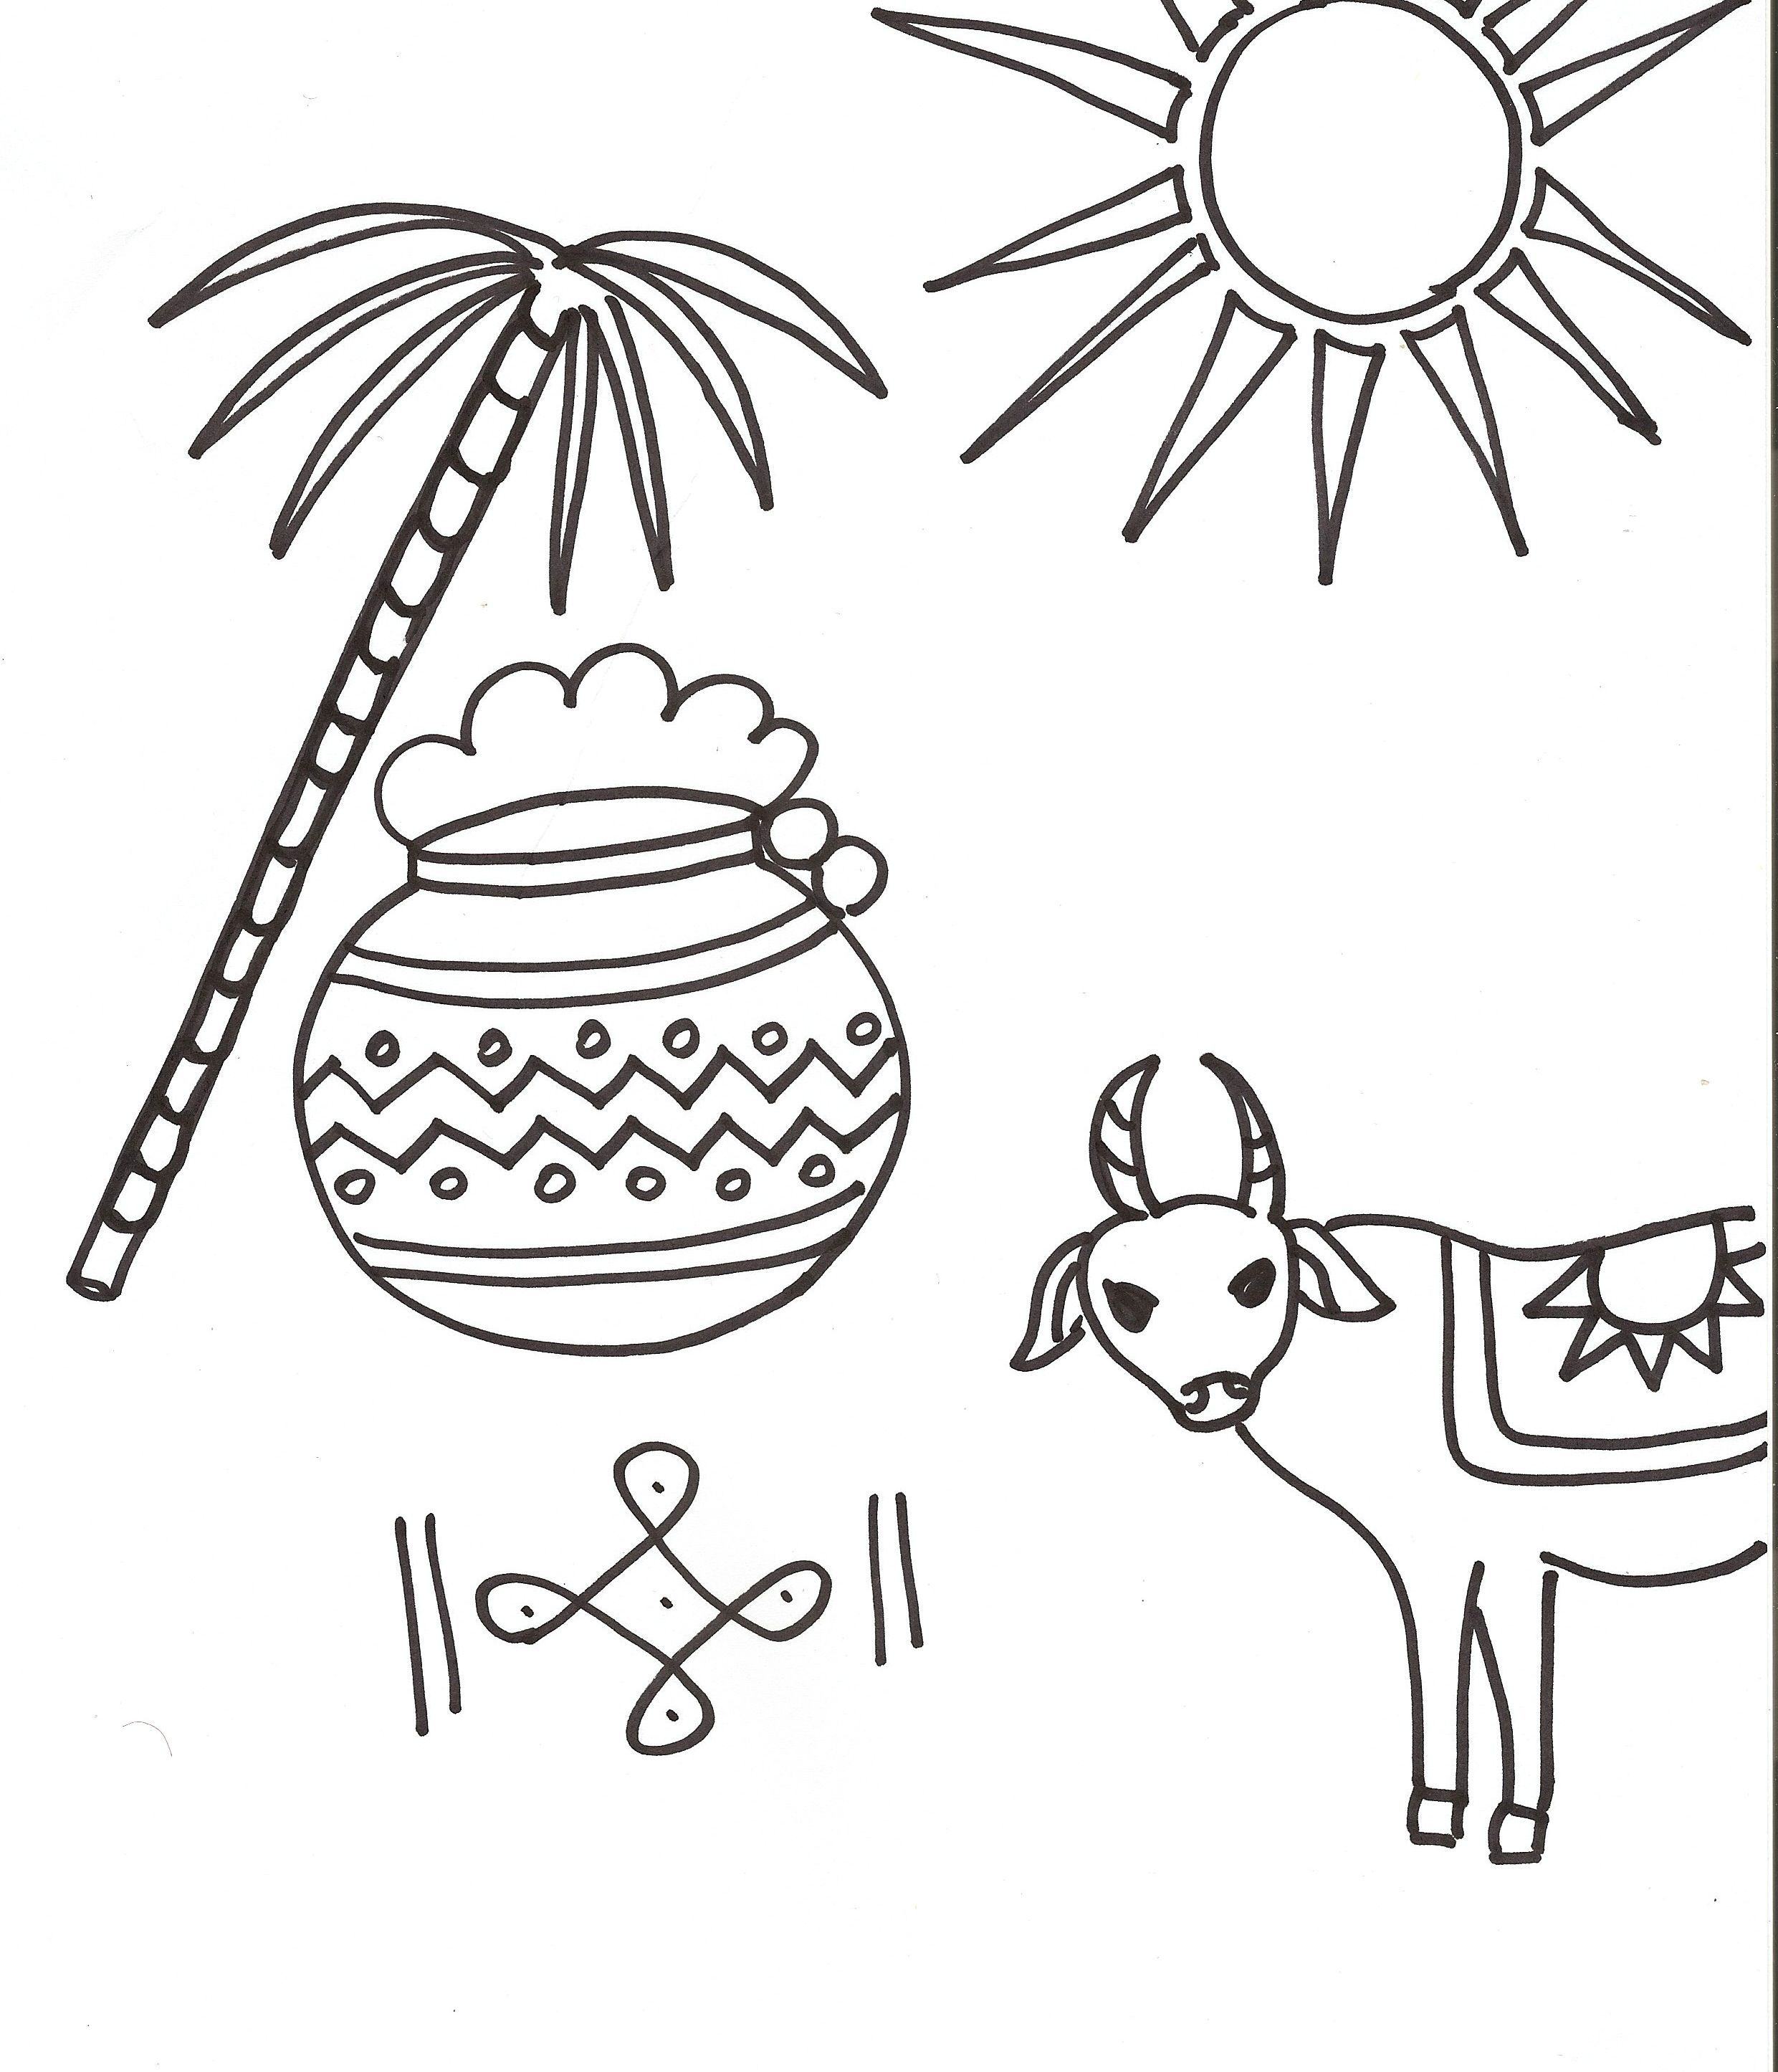 Pongal Coloring Page Download Free Coloring Pages Free Coloring Pages Free Coloring Coloring Pages